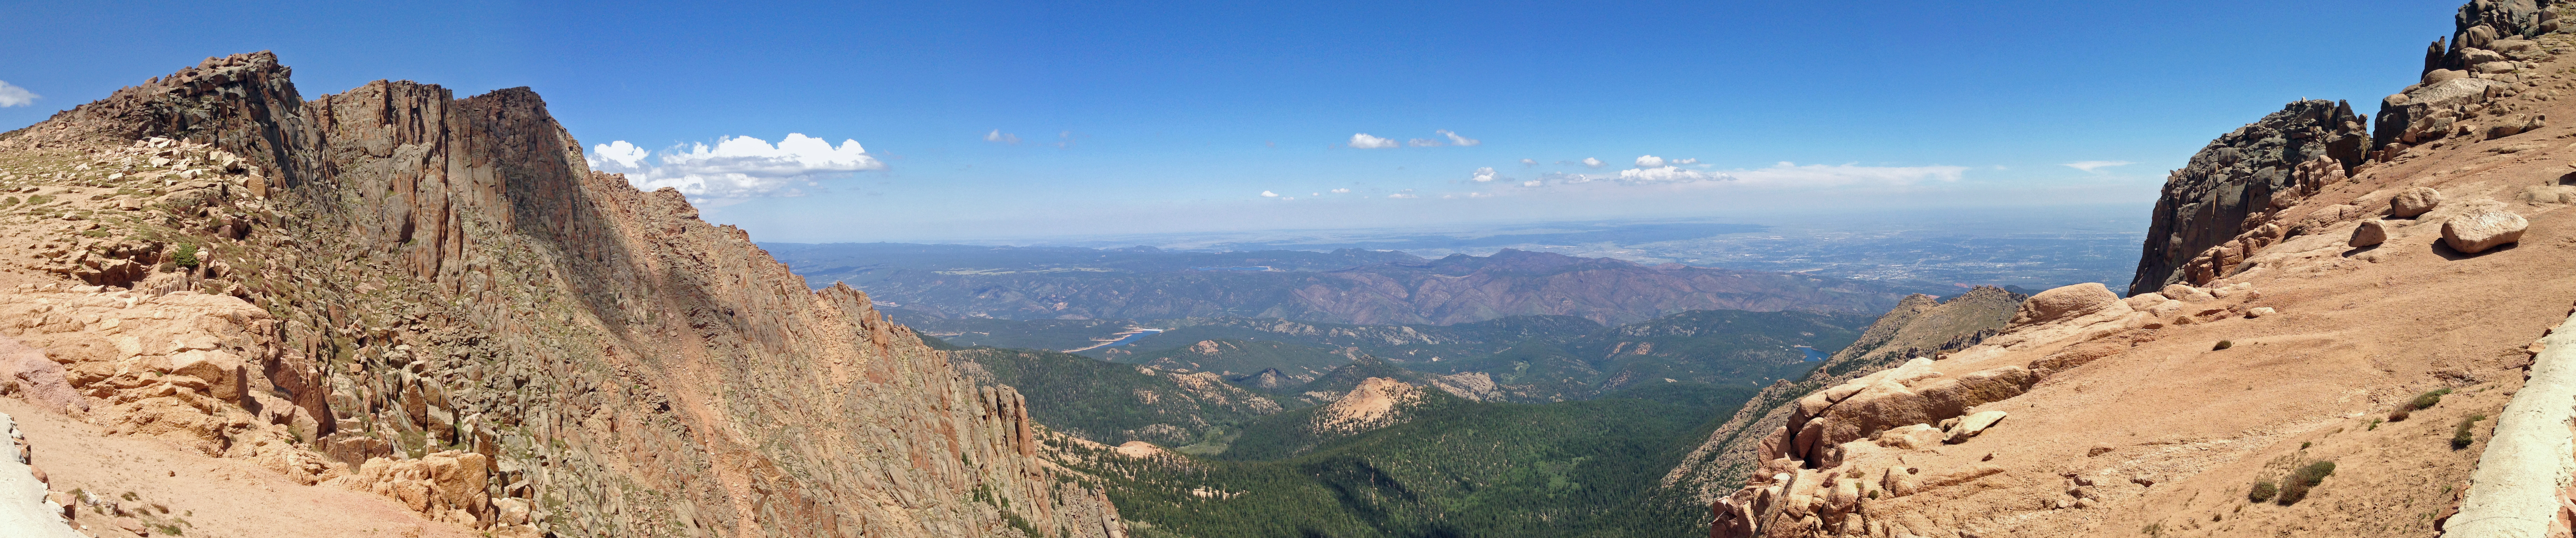 Amazing view from Pikes Peak.